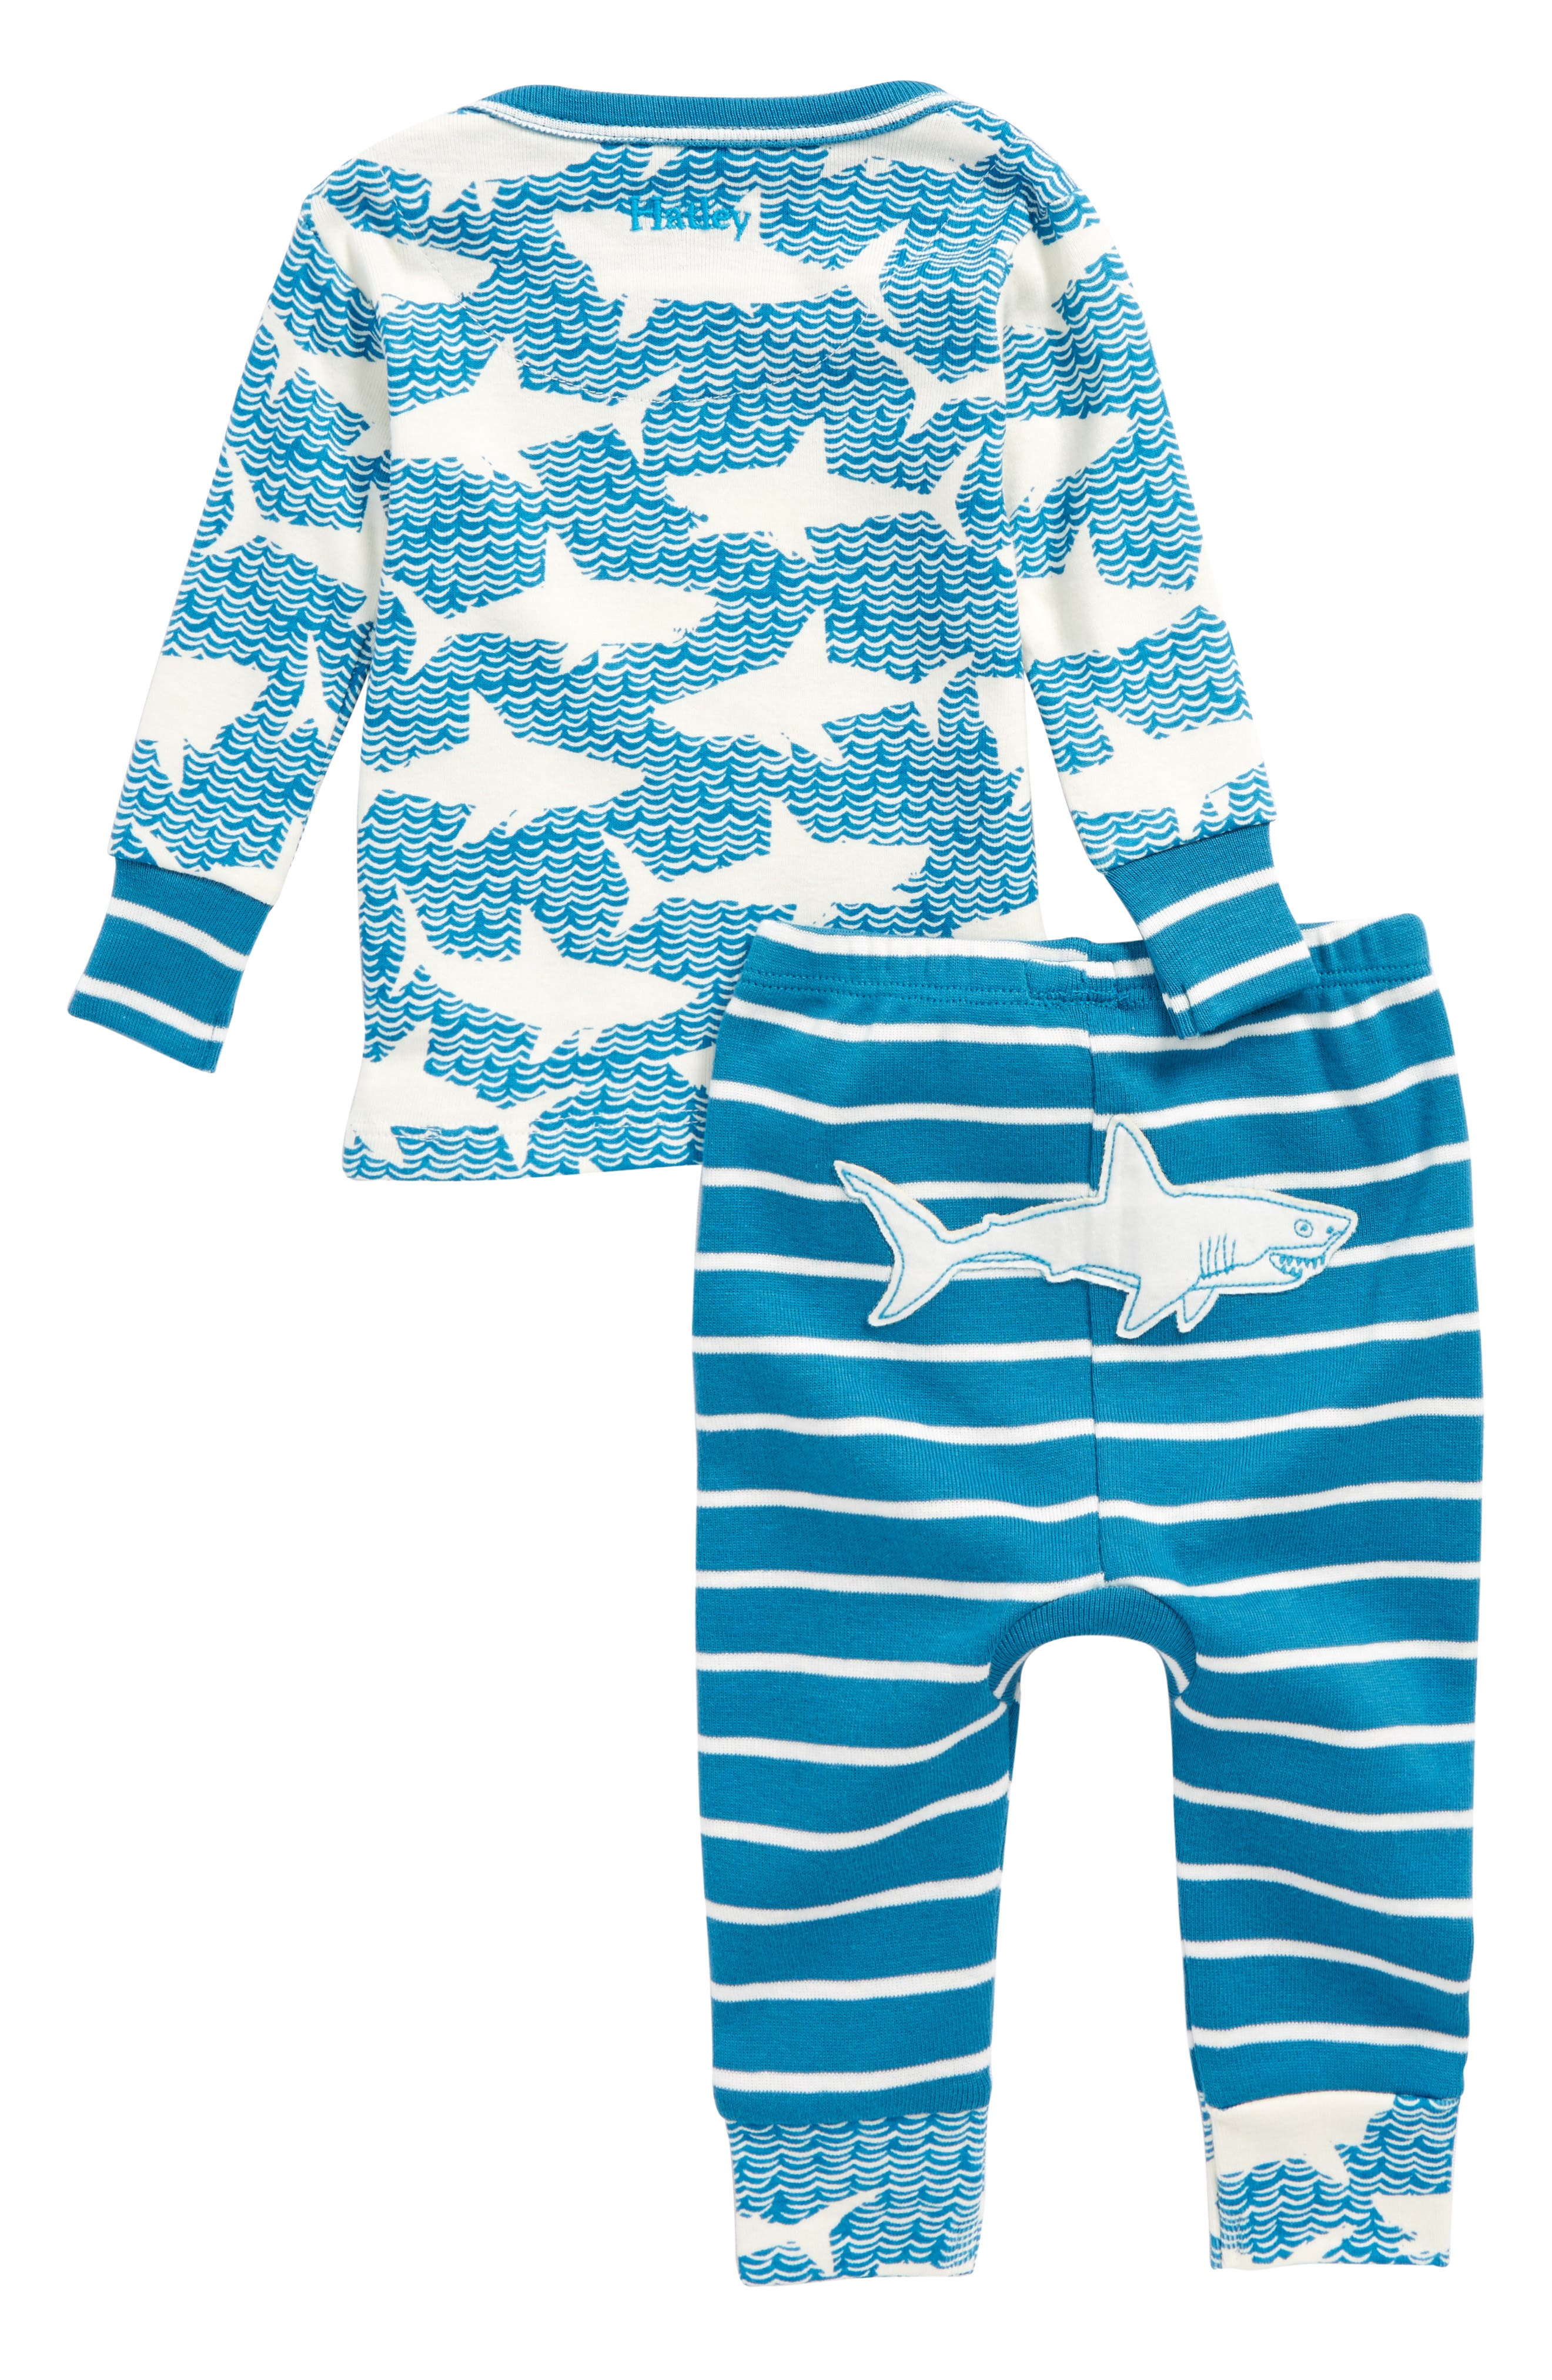 Shark Alley Organic Cotton Fitted Two-Piece Pajamas,                             Main thumbnail 1, color,                             Shark Alley